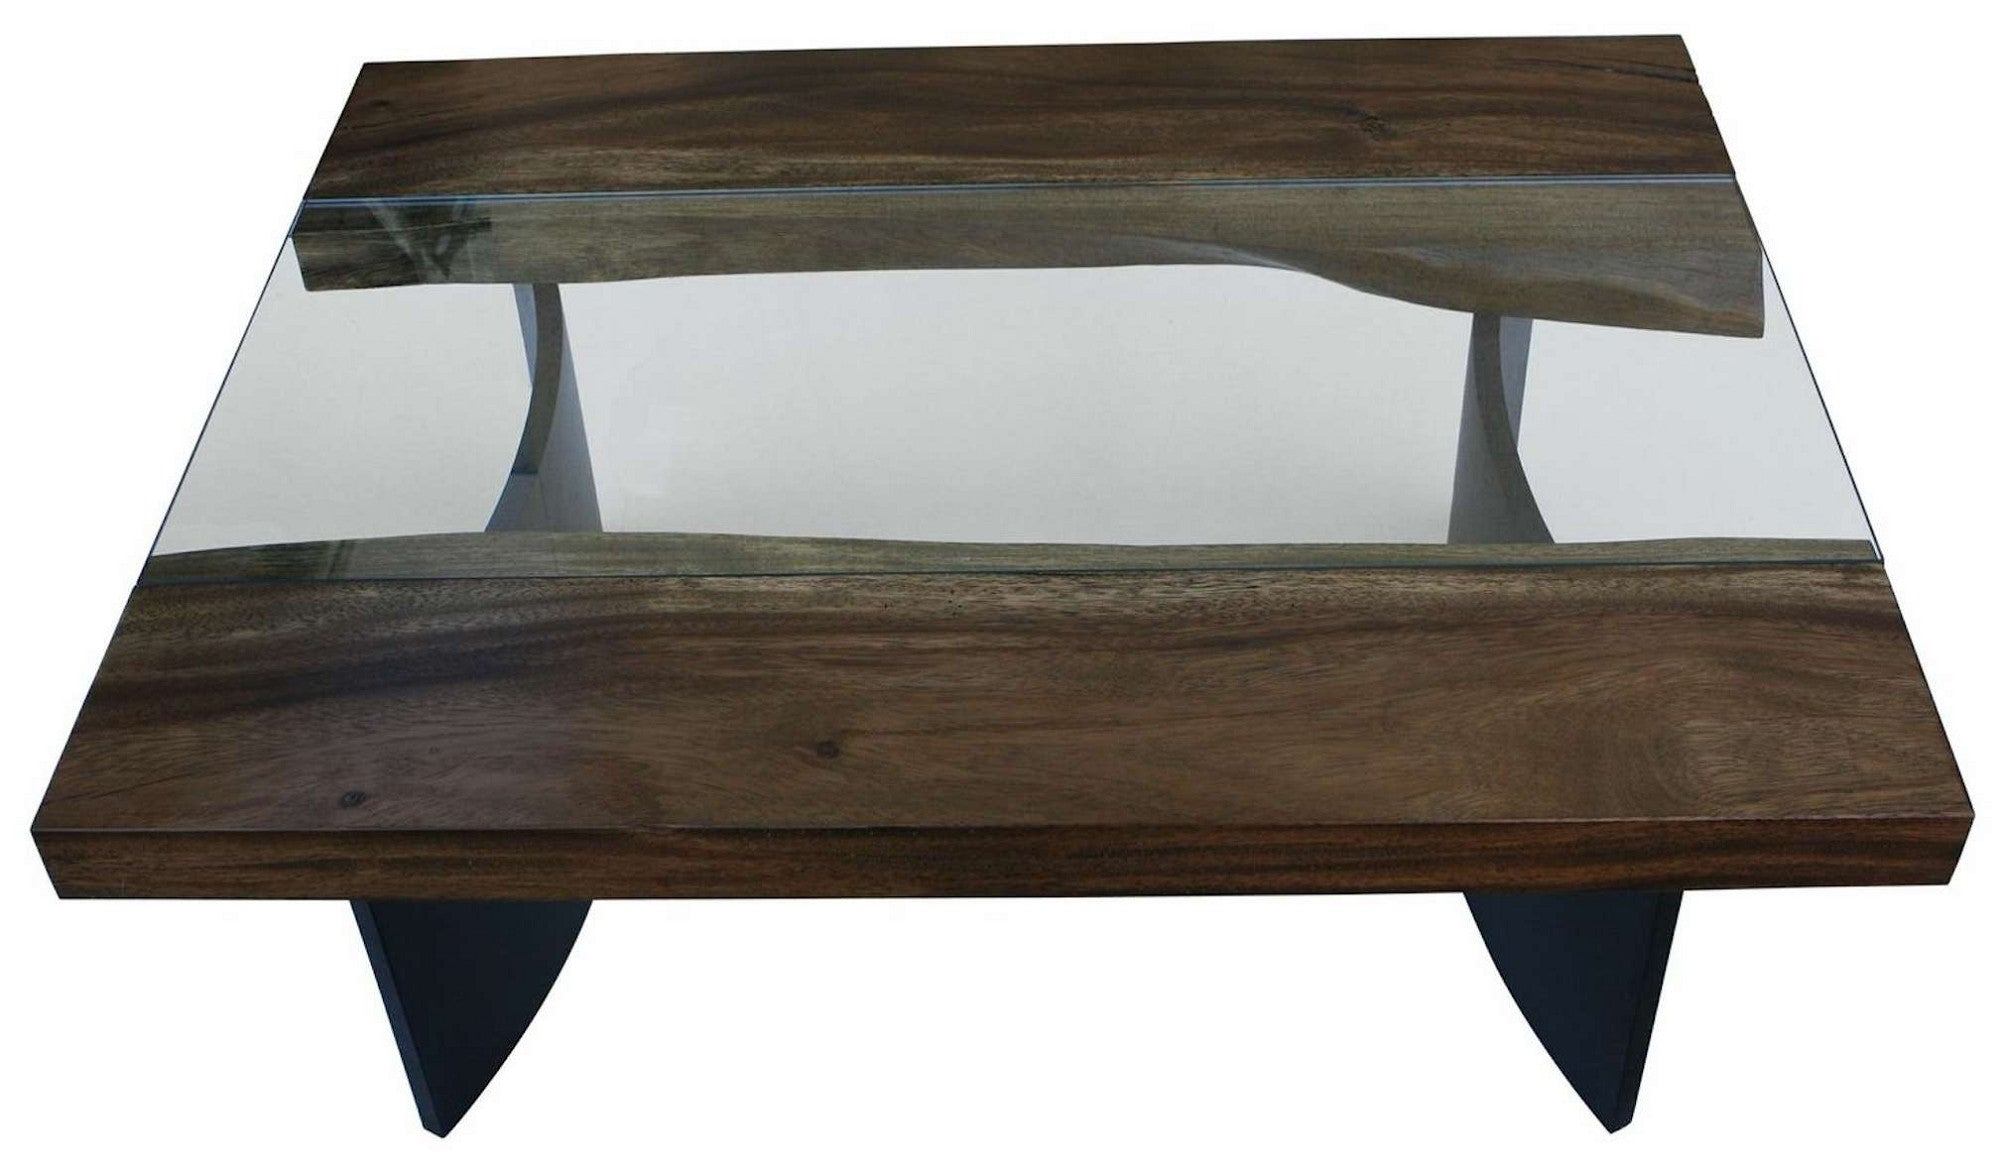 Live Edge Modern Industrial Coffee Table – Mortise & Tenon